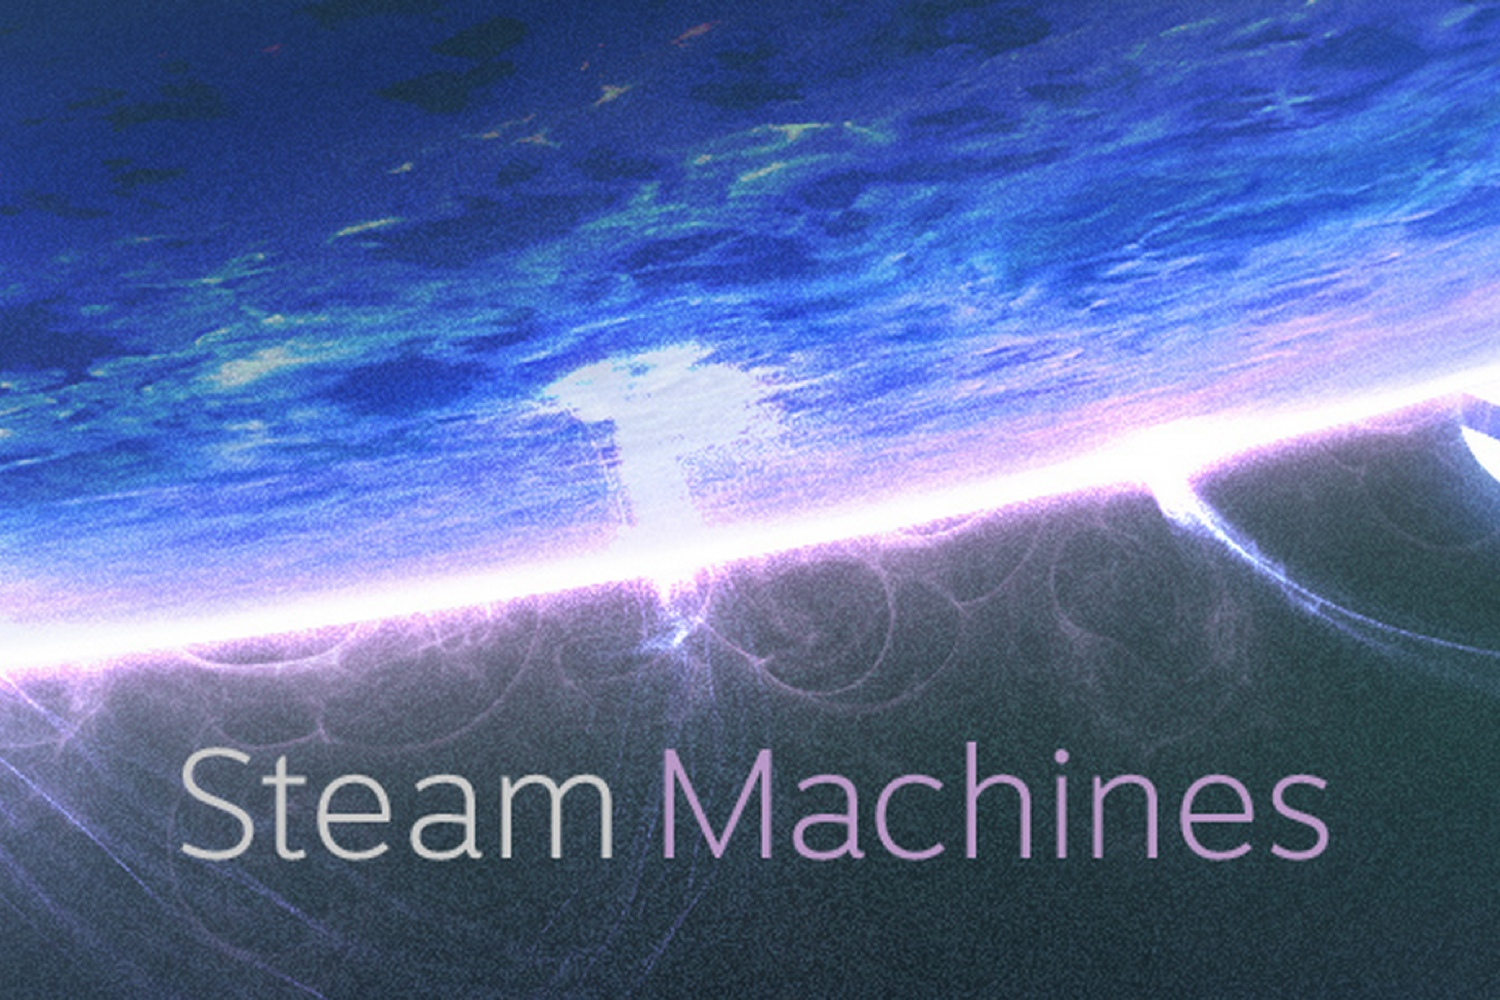 Steam-Machines 05102013